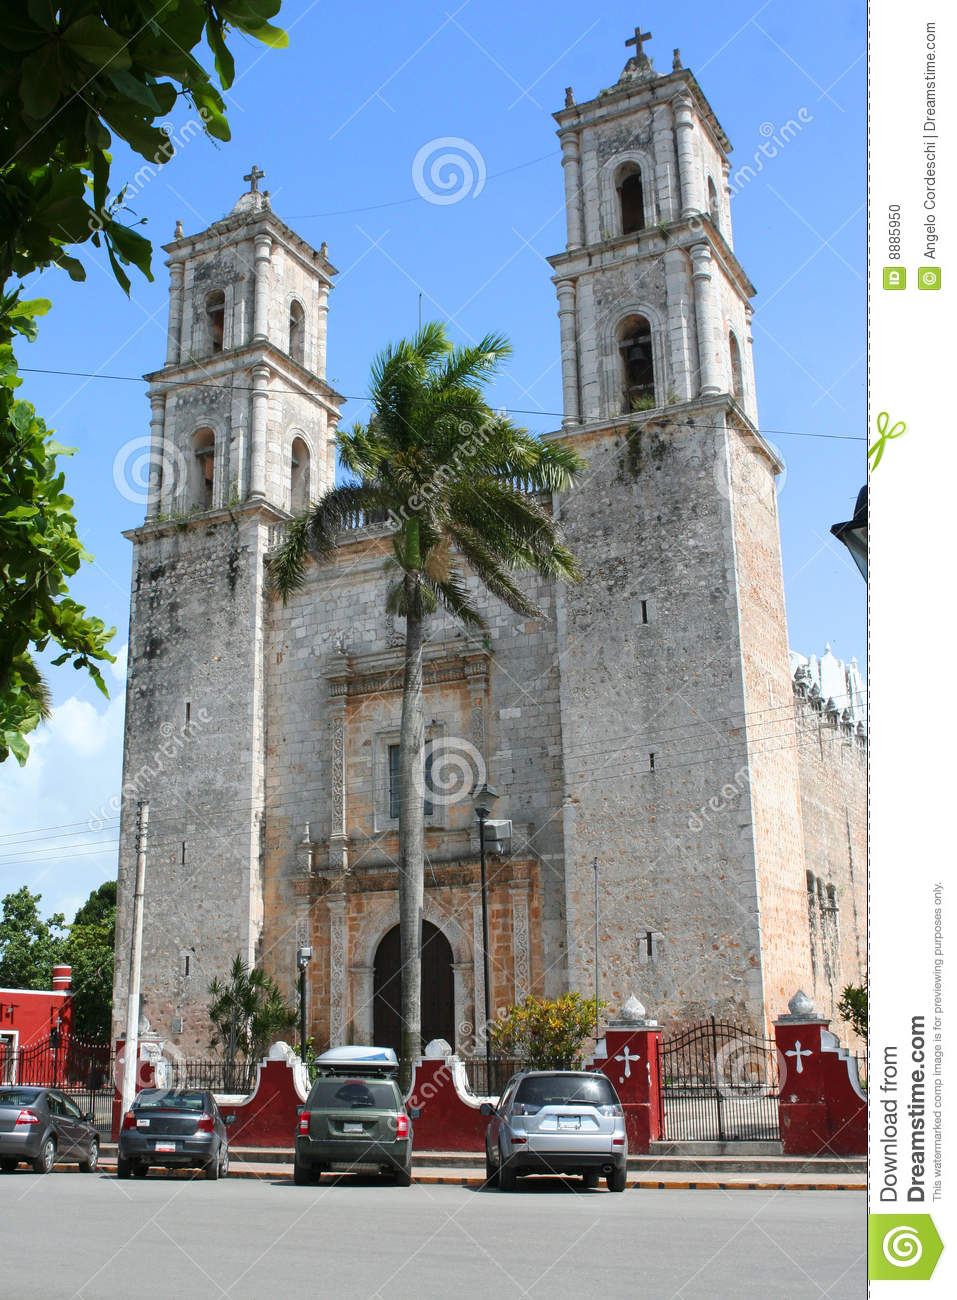 Valladolid Mexico  City pictures : Cathedral Of San Gervasio, Valladolid Mexico Stock Photo Image ...